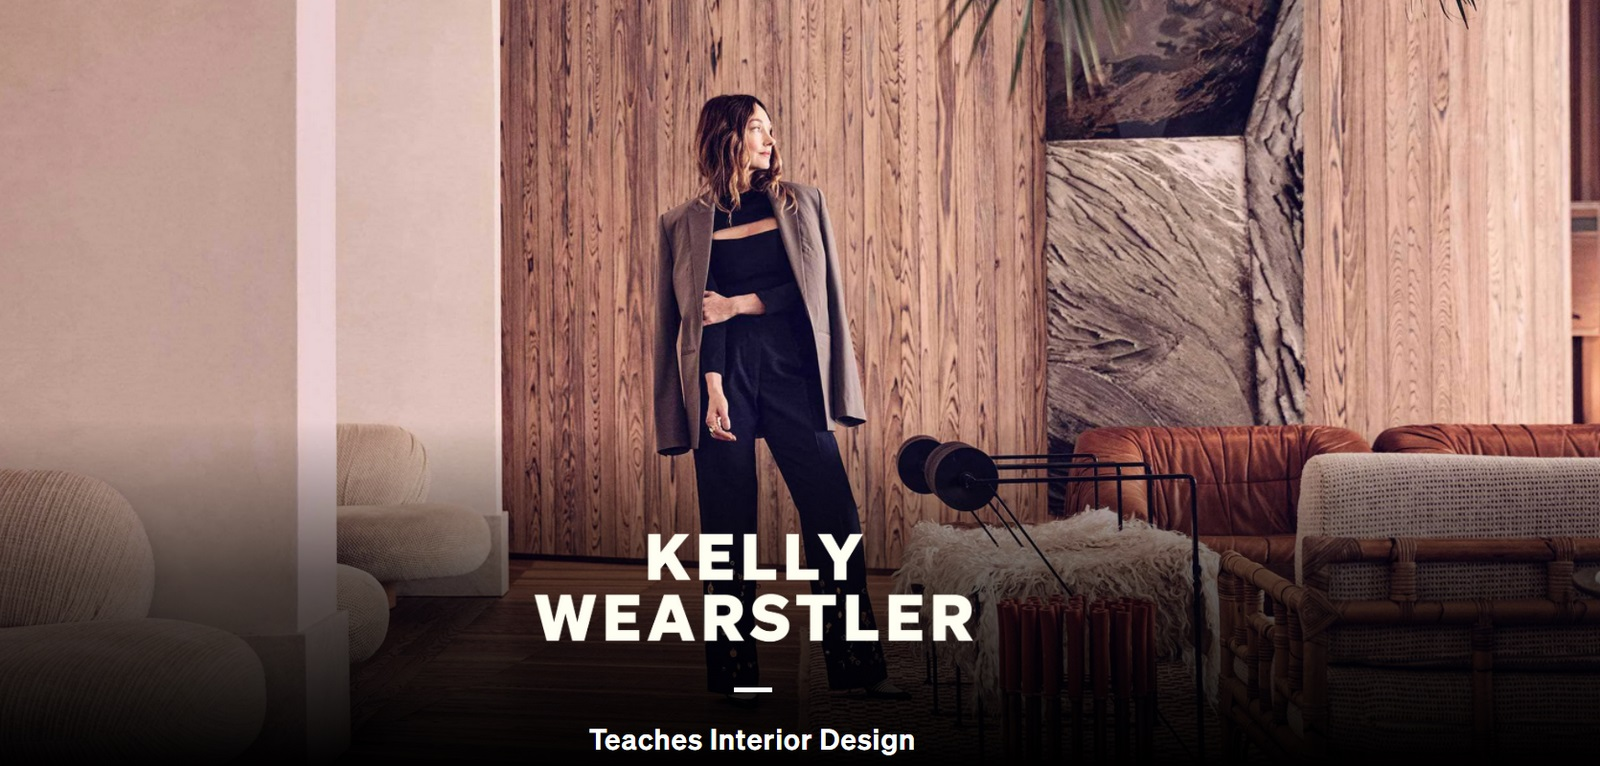 Interviews with Architects: MasterClass Live with Kelly Wearstler by MasterClass - Sheet2